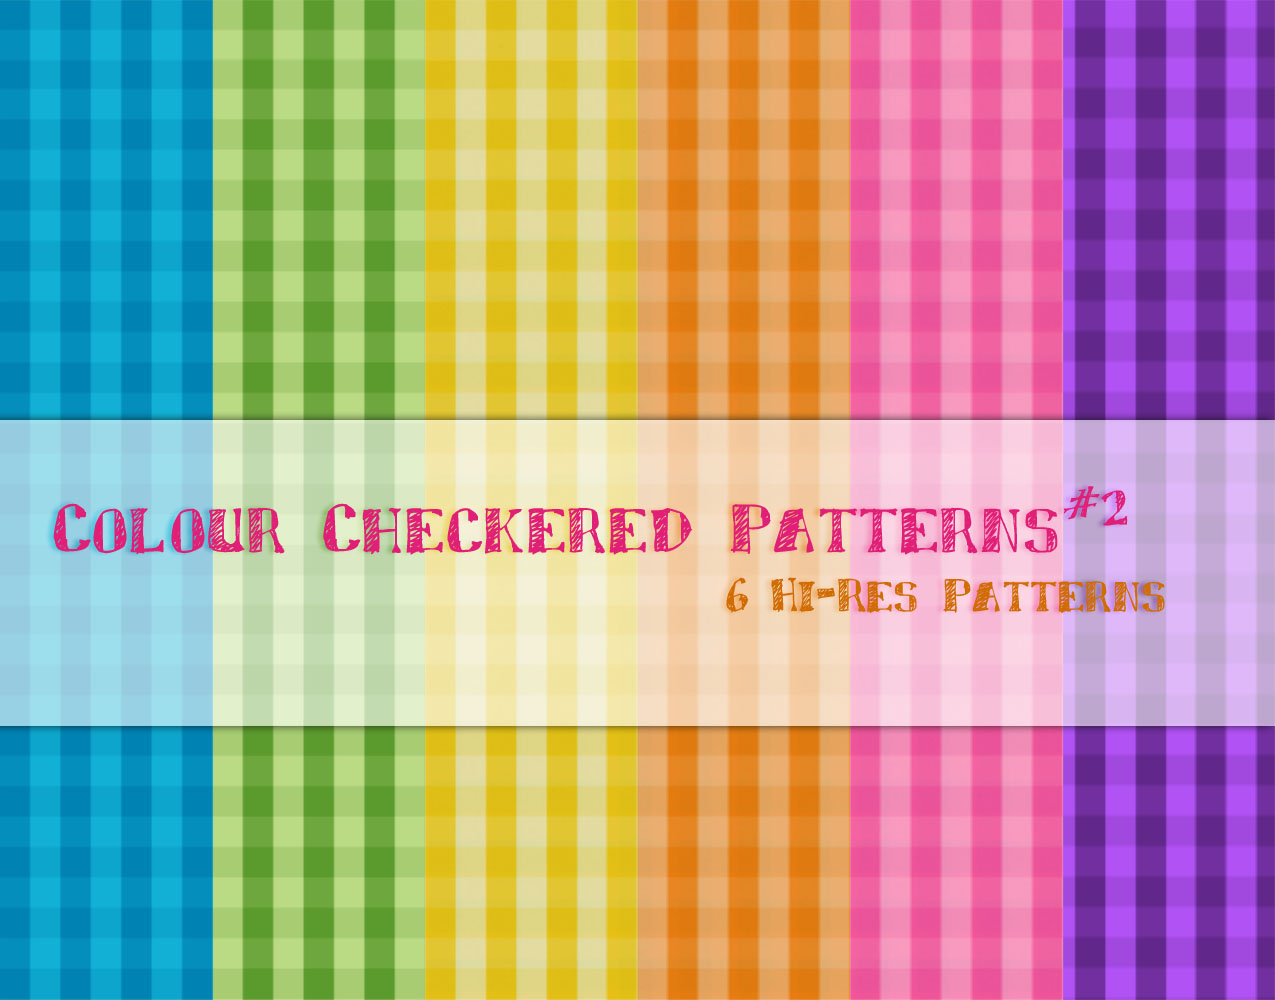 Colour Checkered Patterns2